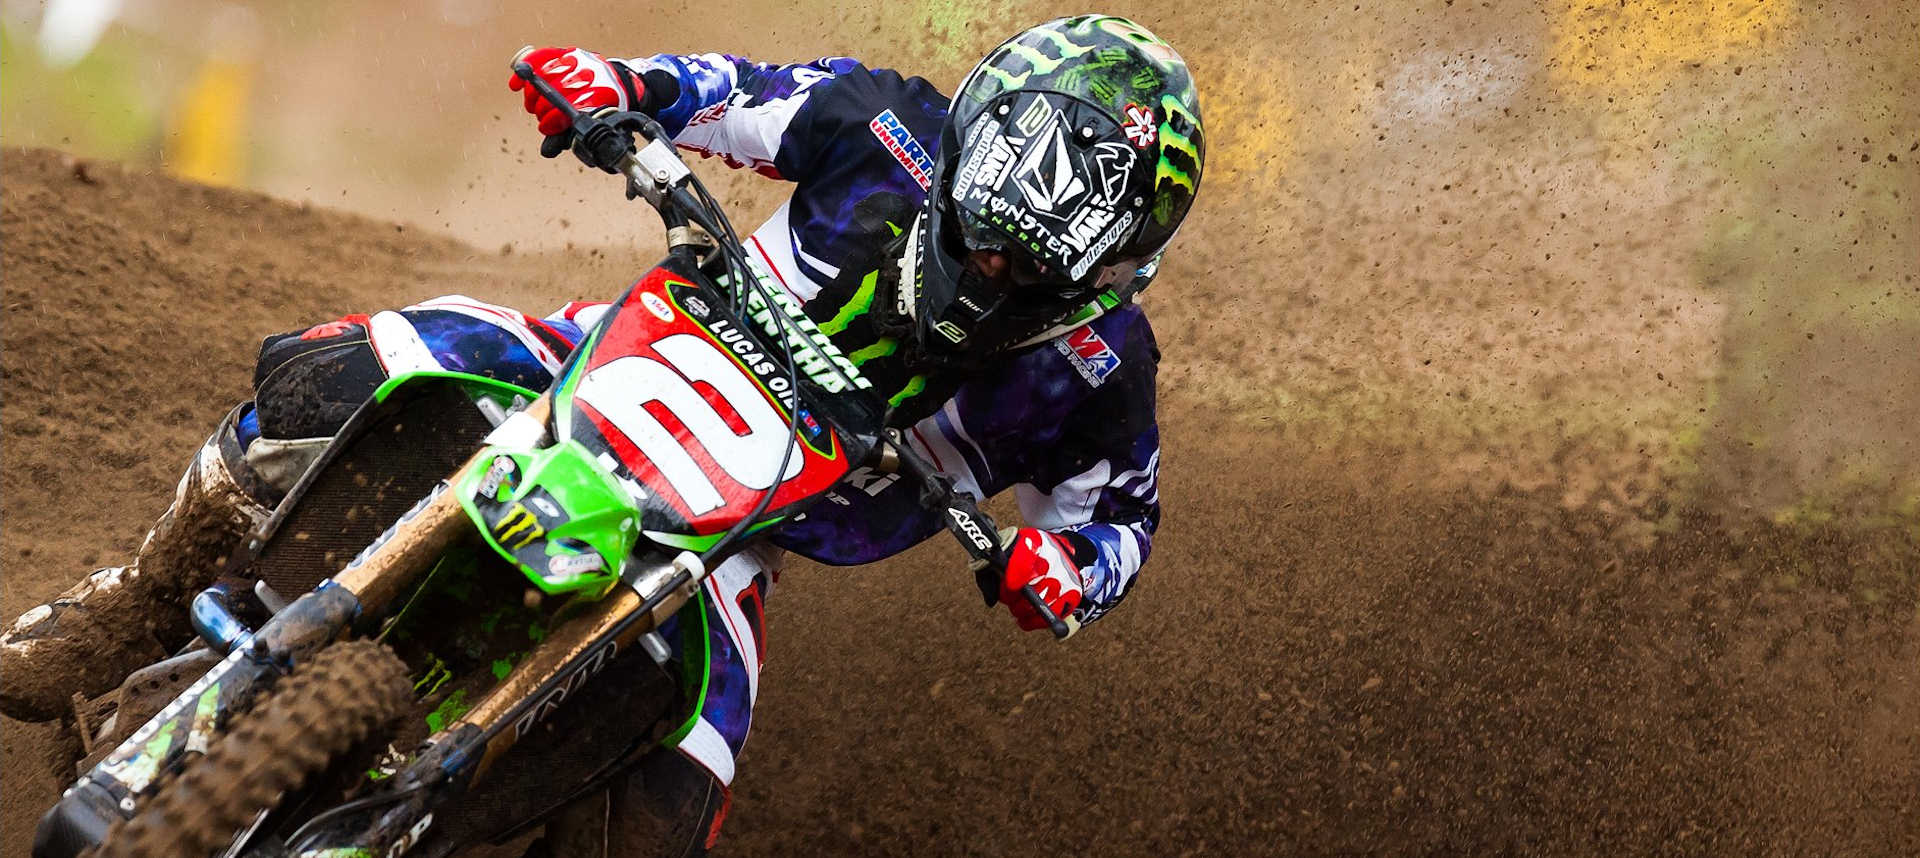 motocross training blog with Gary Semics - Join the discussion!